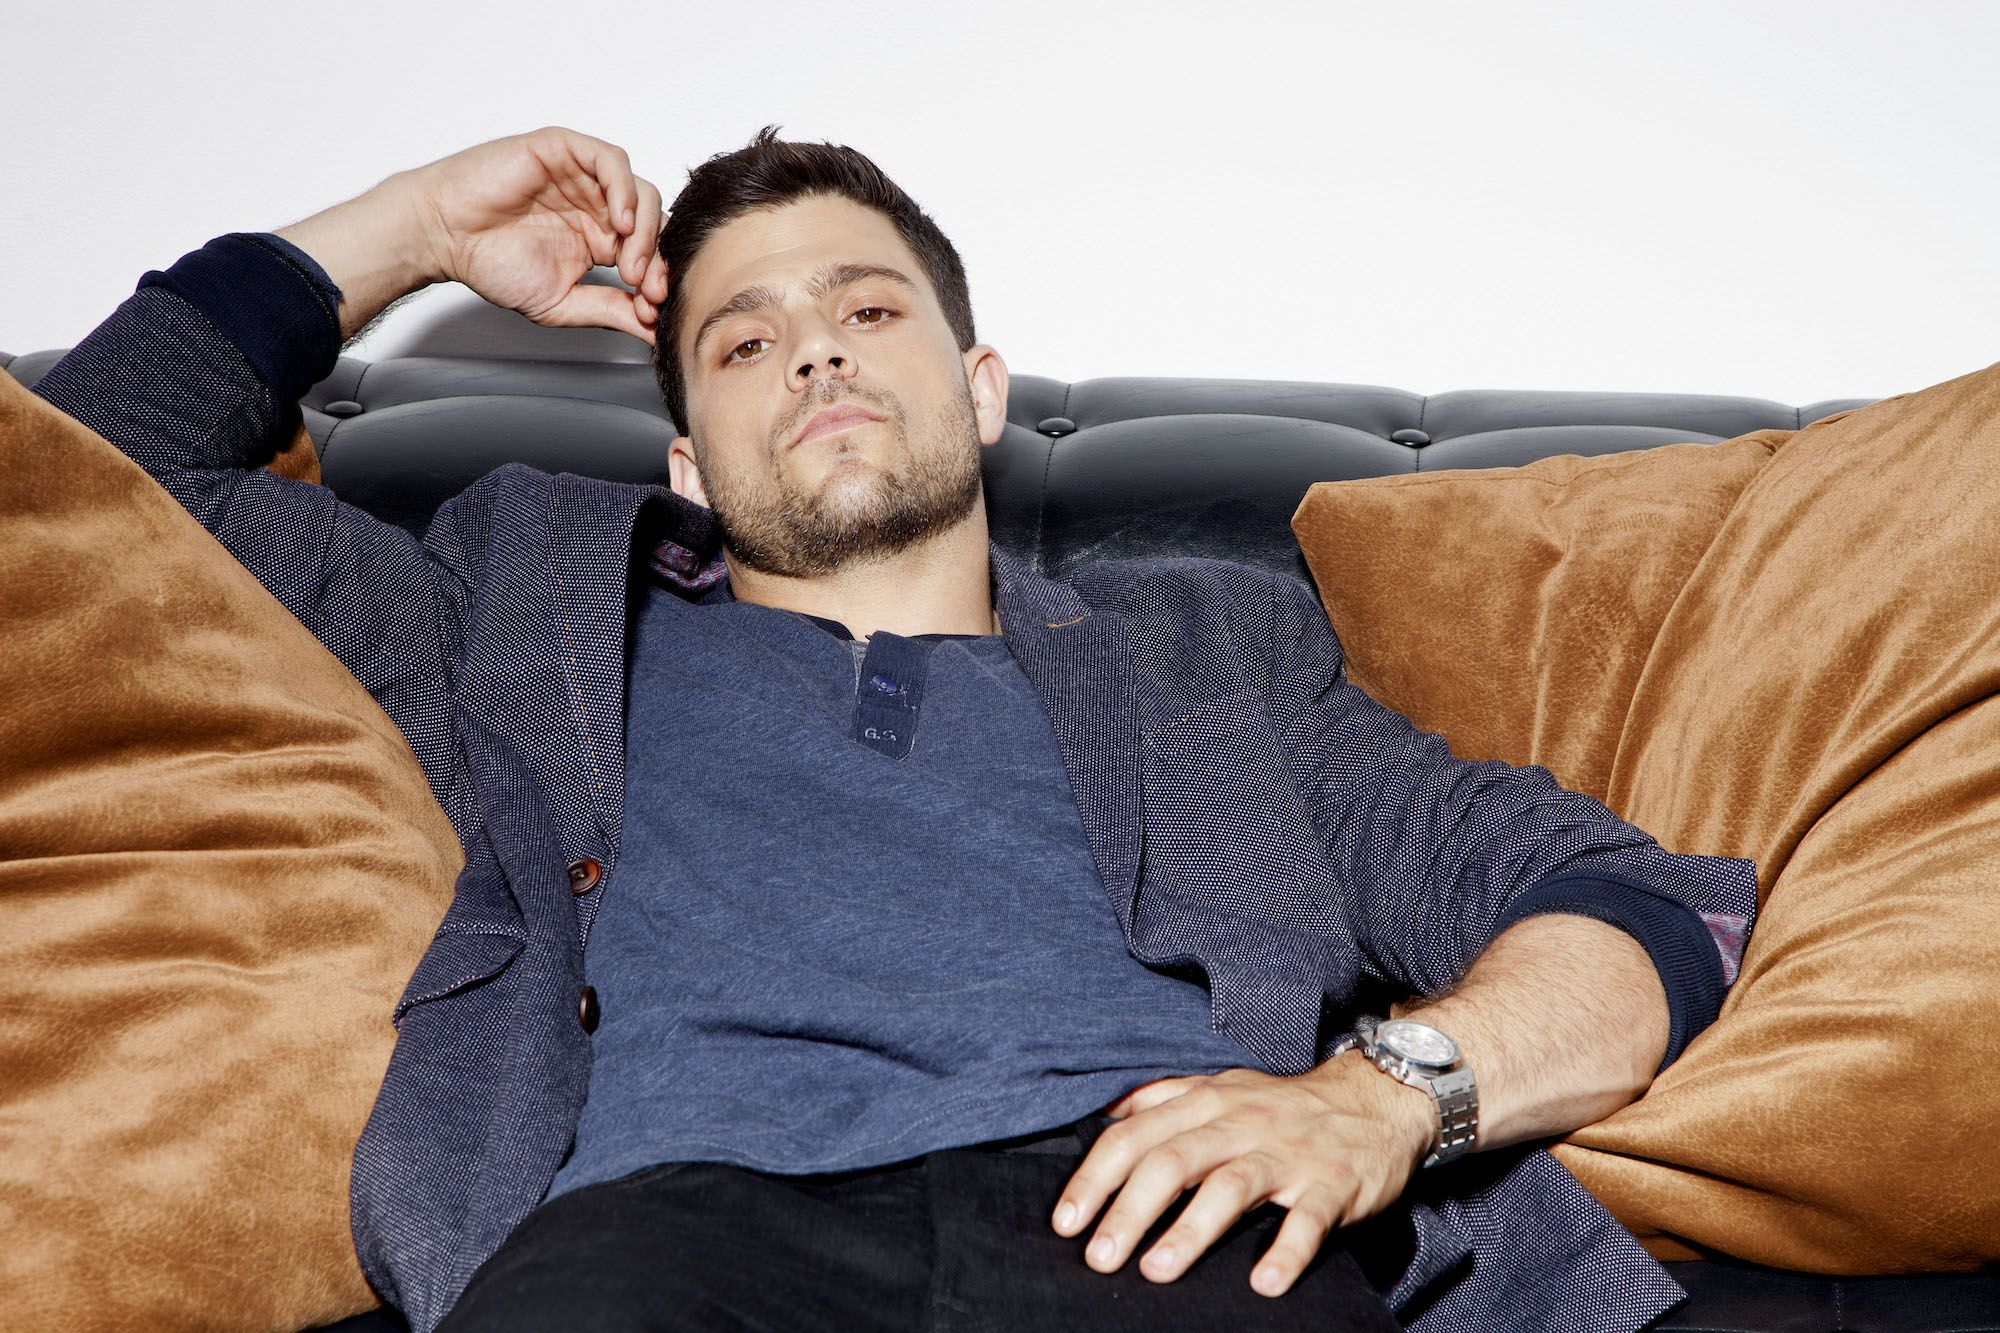 jerry ferrara wikipediajerry ferrara imdb, jerry ferrara kevin connolly, jerry ferrara turtle, jerry ferrara ronda rousey, jerry ferrara weight loss, jerry ferrara instagram, jerry ferrara katie cassidy, jerry ferrara entourage, jerry ferrara wikipedia, jerry ferrara, jerry ferrara net worth, jerry ferrara height, jerry ferrara jamie lynn sigler, jerry ferrara twitter, jerry ferrara lone survivor, jerry ferrara lose weight, jerry ferrara bio, jerry ferrara wdw, jerry ferrara facebook, jerry ferrara wife